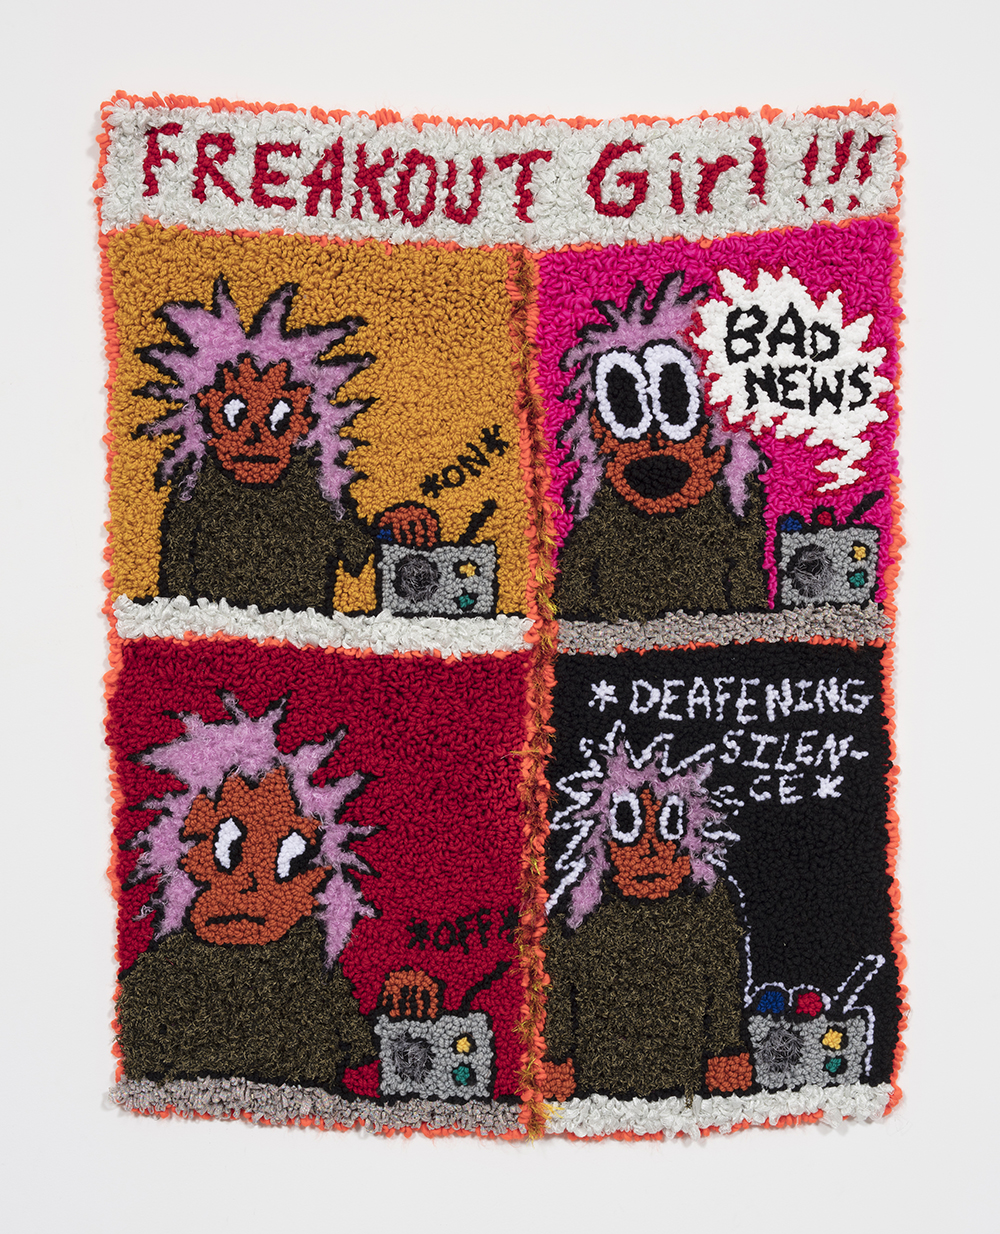 Hannah Epstein. <em>Freakout Girl VS The News Cycle</em>, 2019. Wool, acrylic, polyester and burlap, 47 x 37 inches  (119.4 x 94 cm)